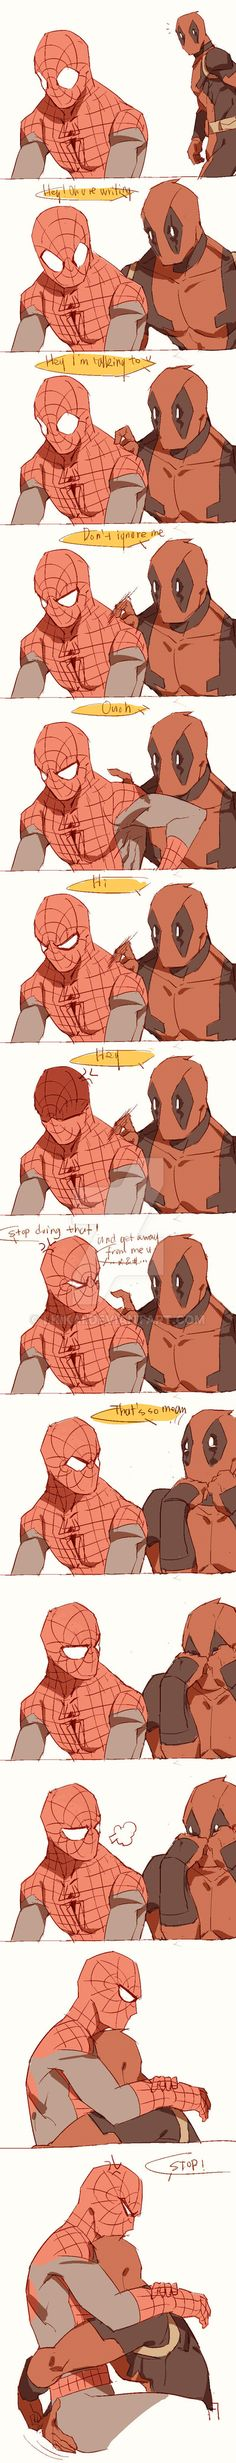 Spideypool212 by LKiKAi.deviantart.com on @DeviantArt